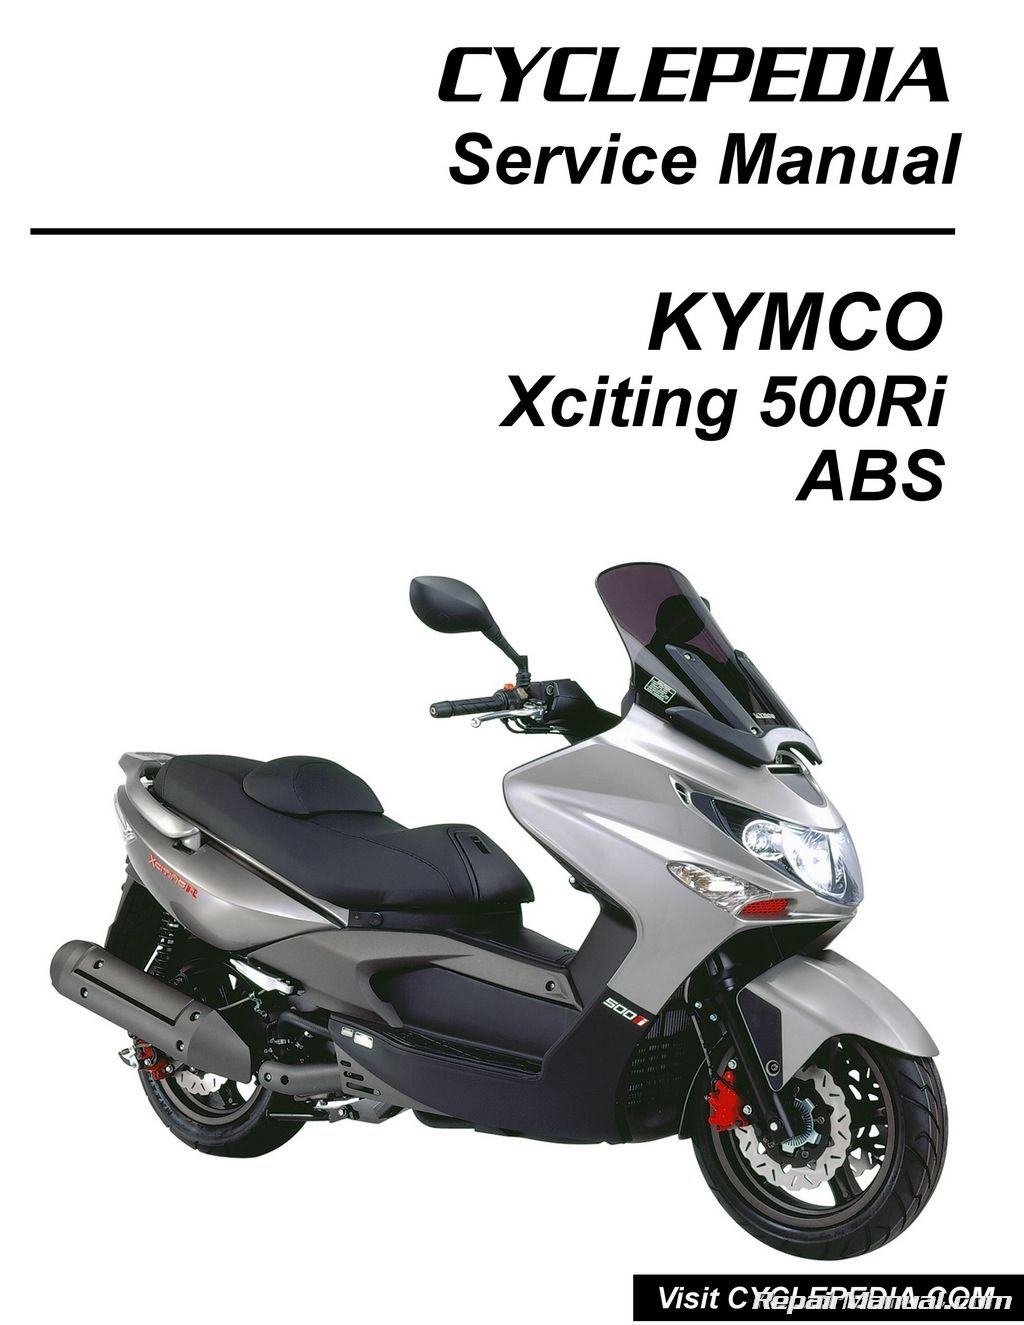 kymco scooter manual download